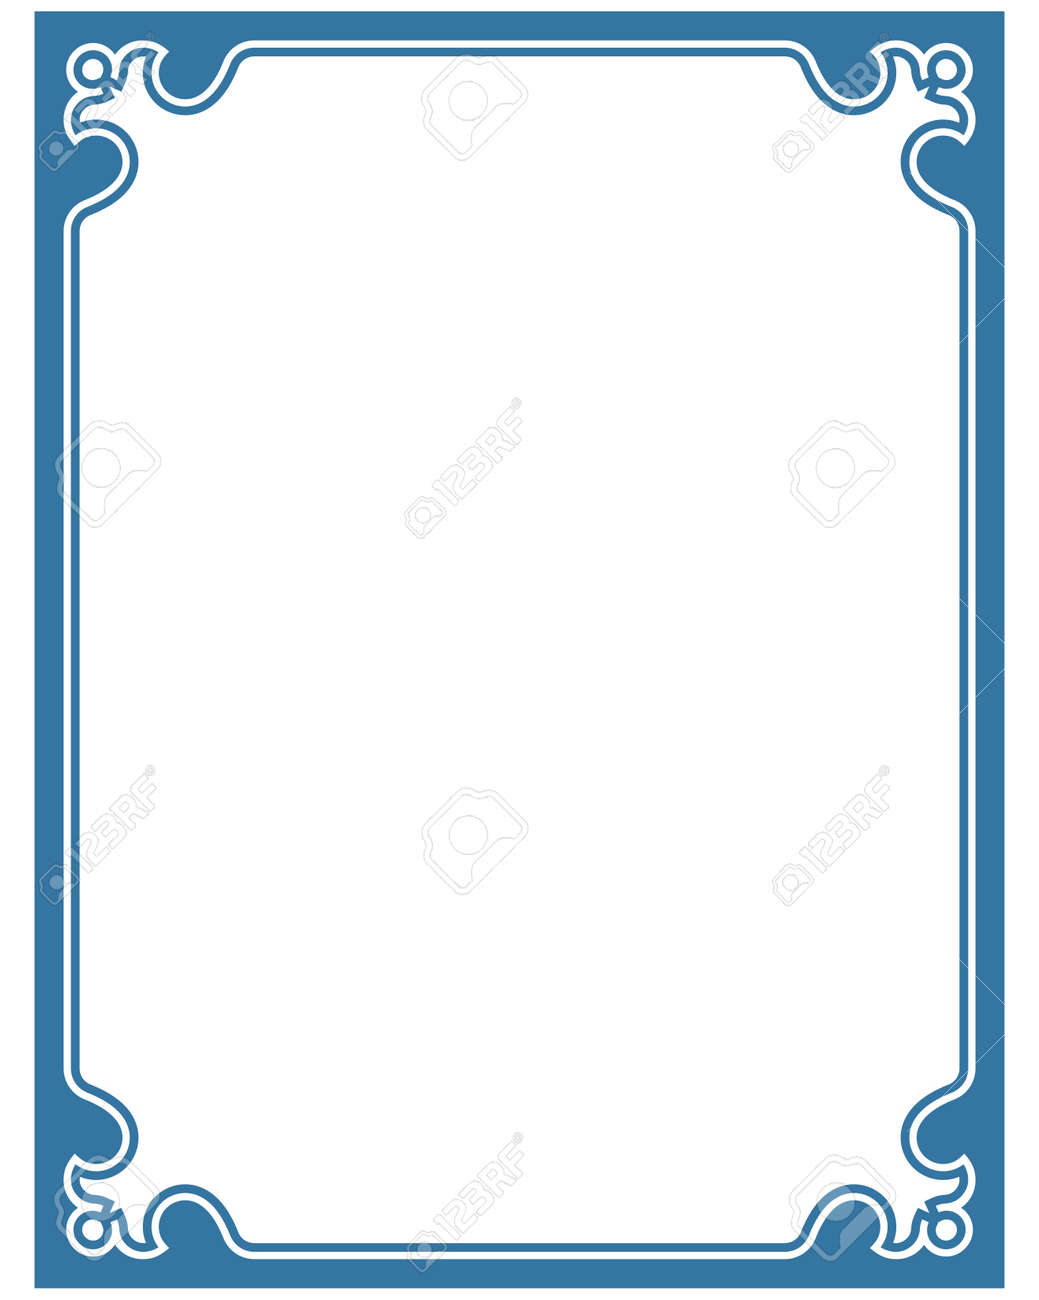 blue border frame deco vector label simple line corner royalty free cliparts vectors and stock illustration image 52559154 blue border frame deco vector label simple line corner